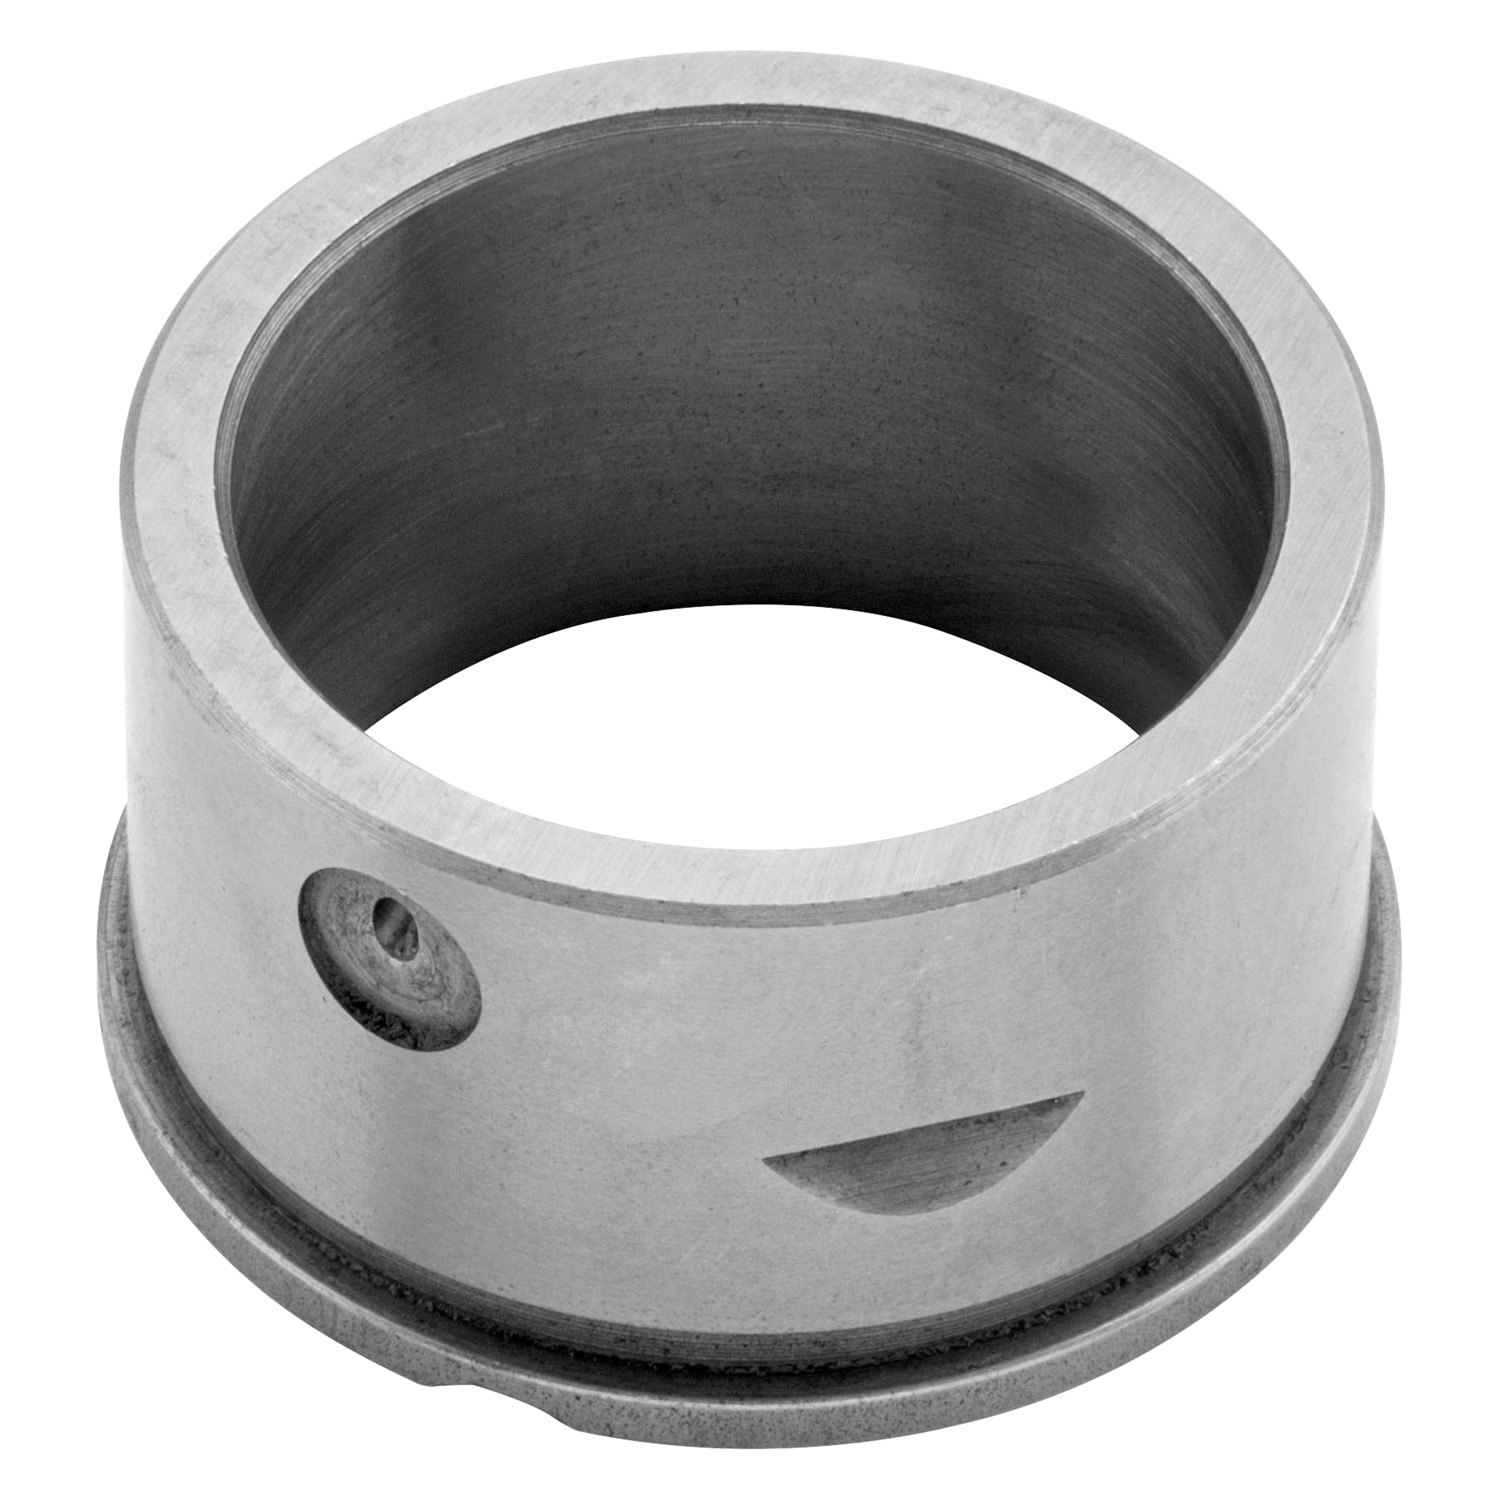 Eastern Performance® - Pinion Shaft Bushings Crankcase End